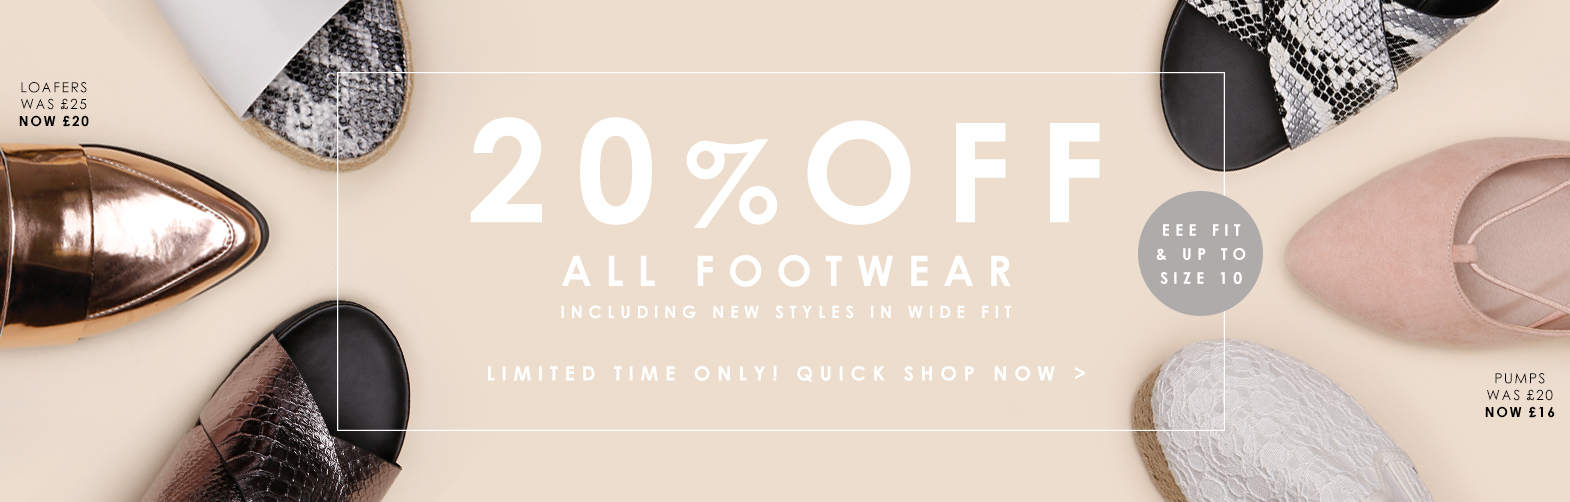 20% Off Women's Footwear, Up to size 10 >